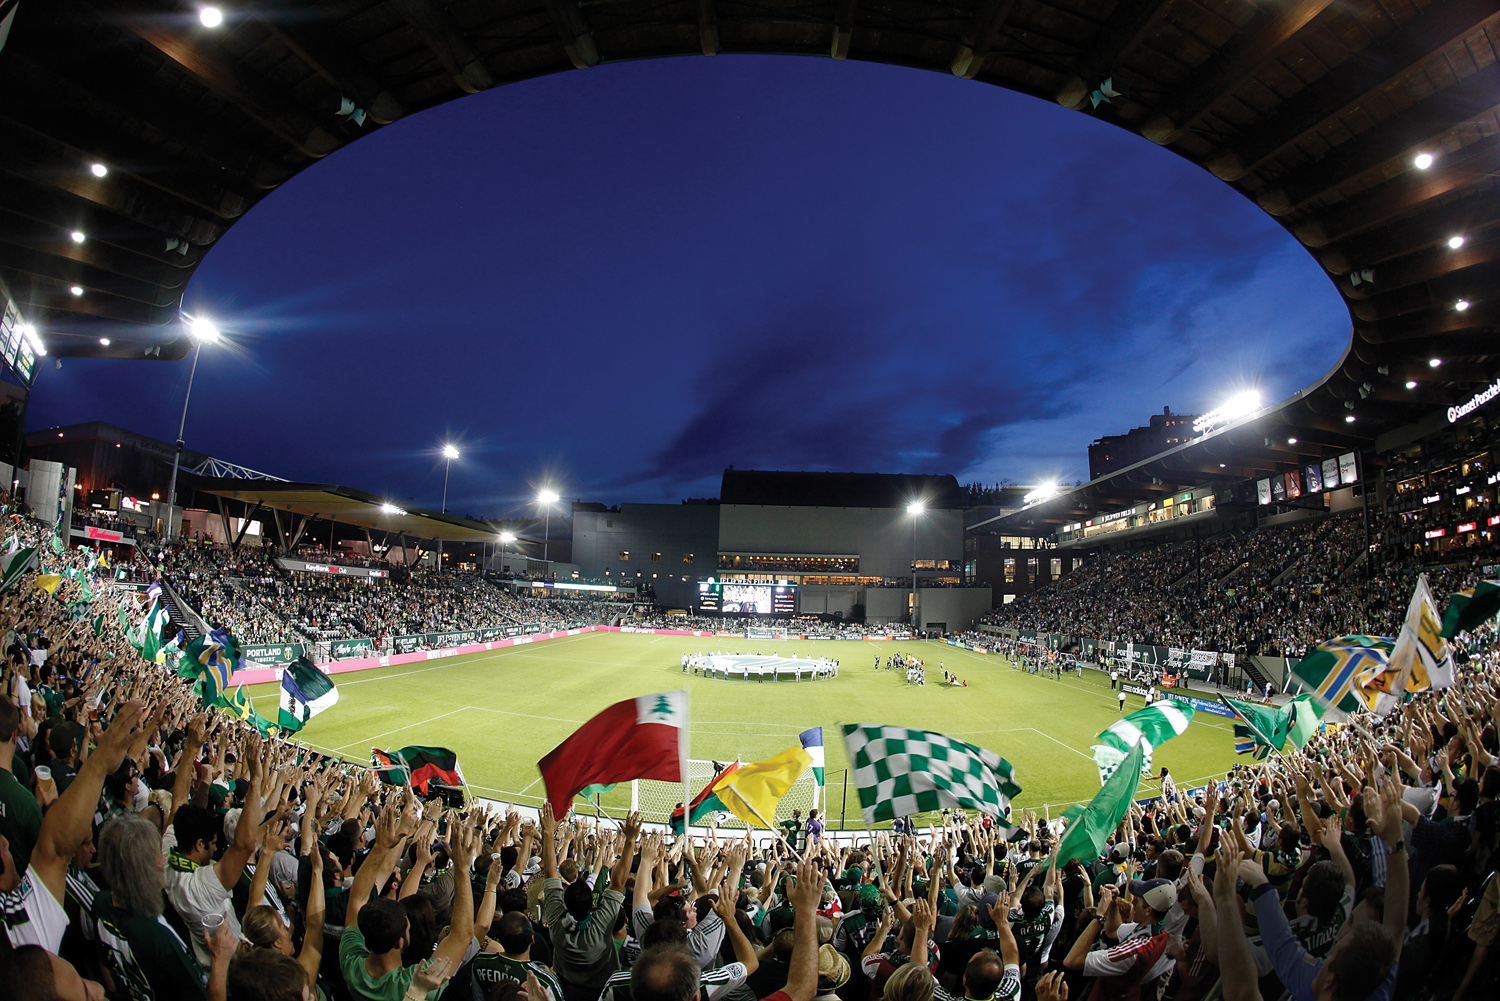 The Portland Timbers play their home games at Jeld-Wen Field, one of 14 Major League Soccer stadiums designed specifically for soccer. Photo by Jonathan Ferrey/Getty Images